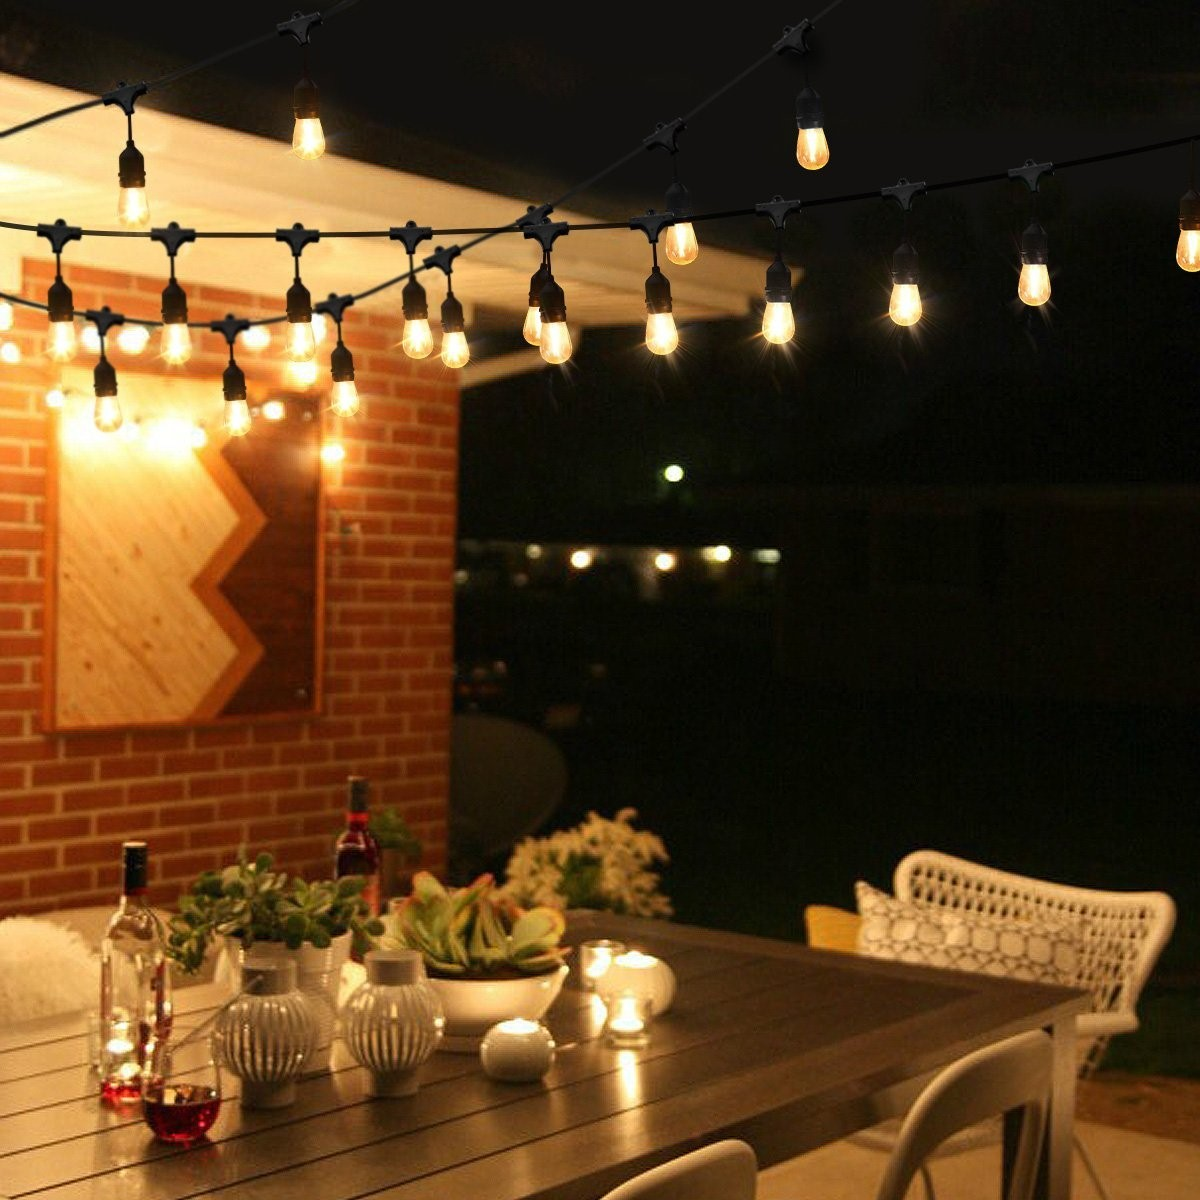 Worbest LED String lights, the mood maker